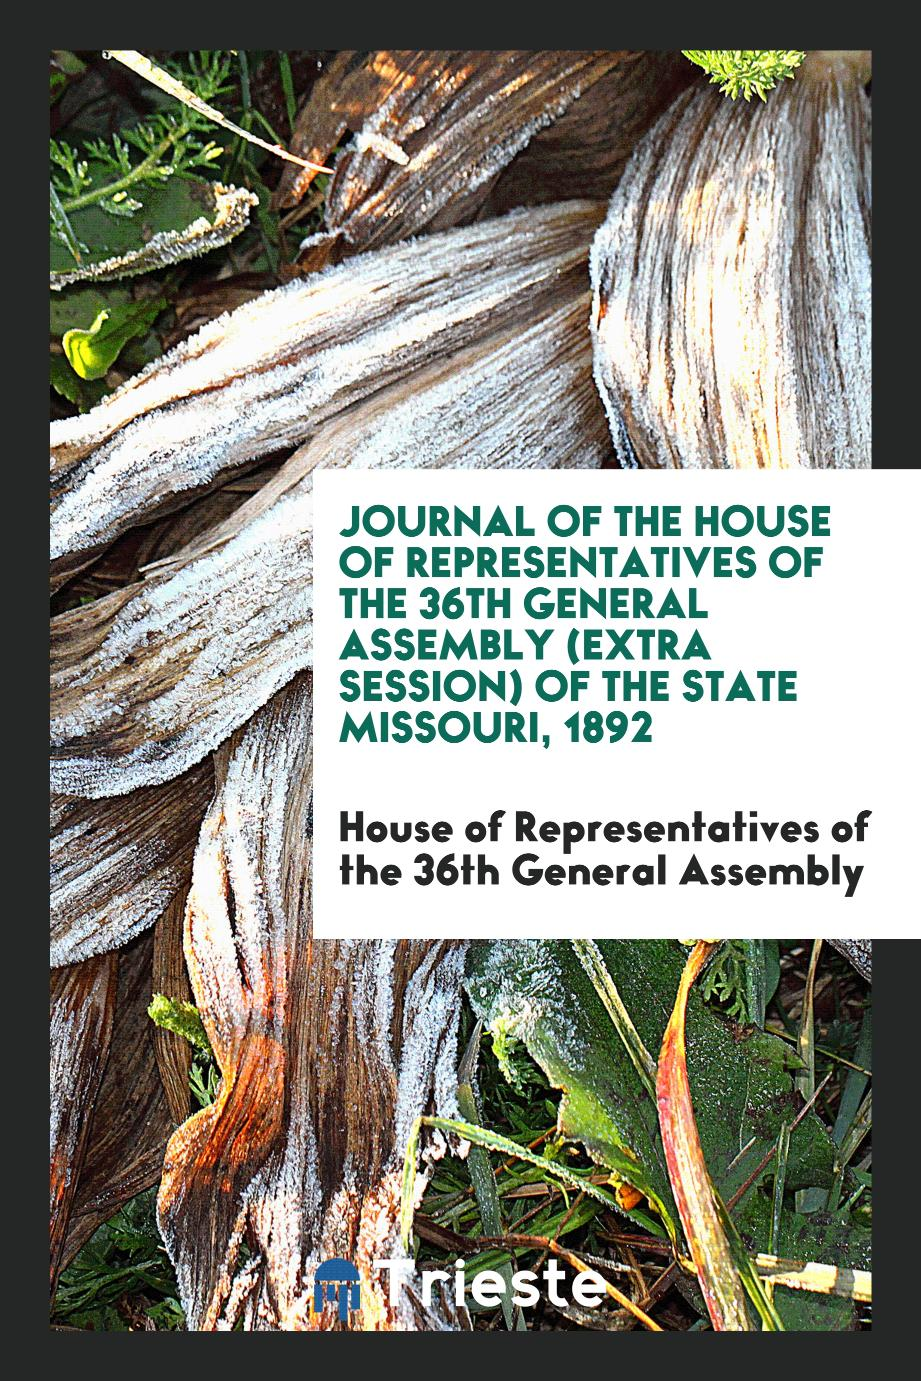 Journal of the House of Representatives of the 36th General Assembly (Extra Session) of the State Missouri, 1892